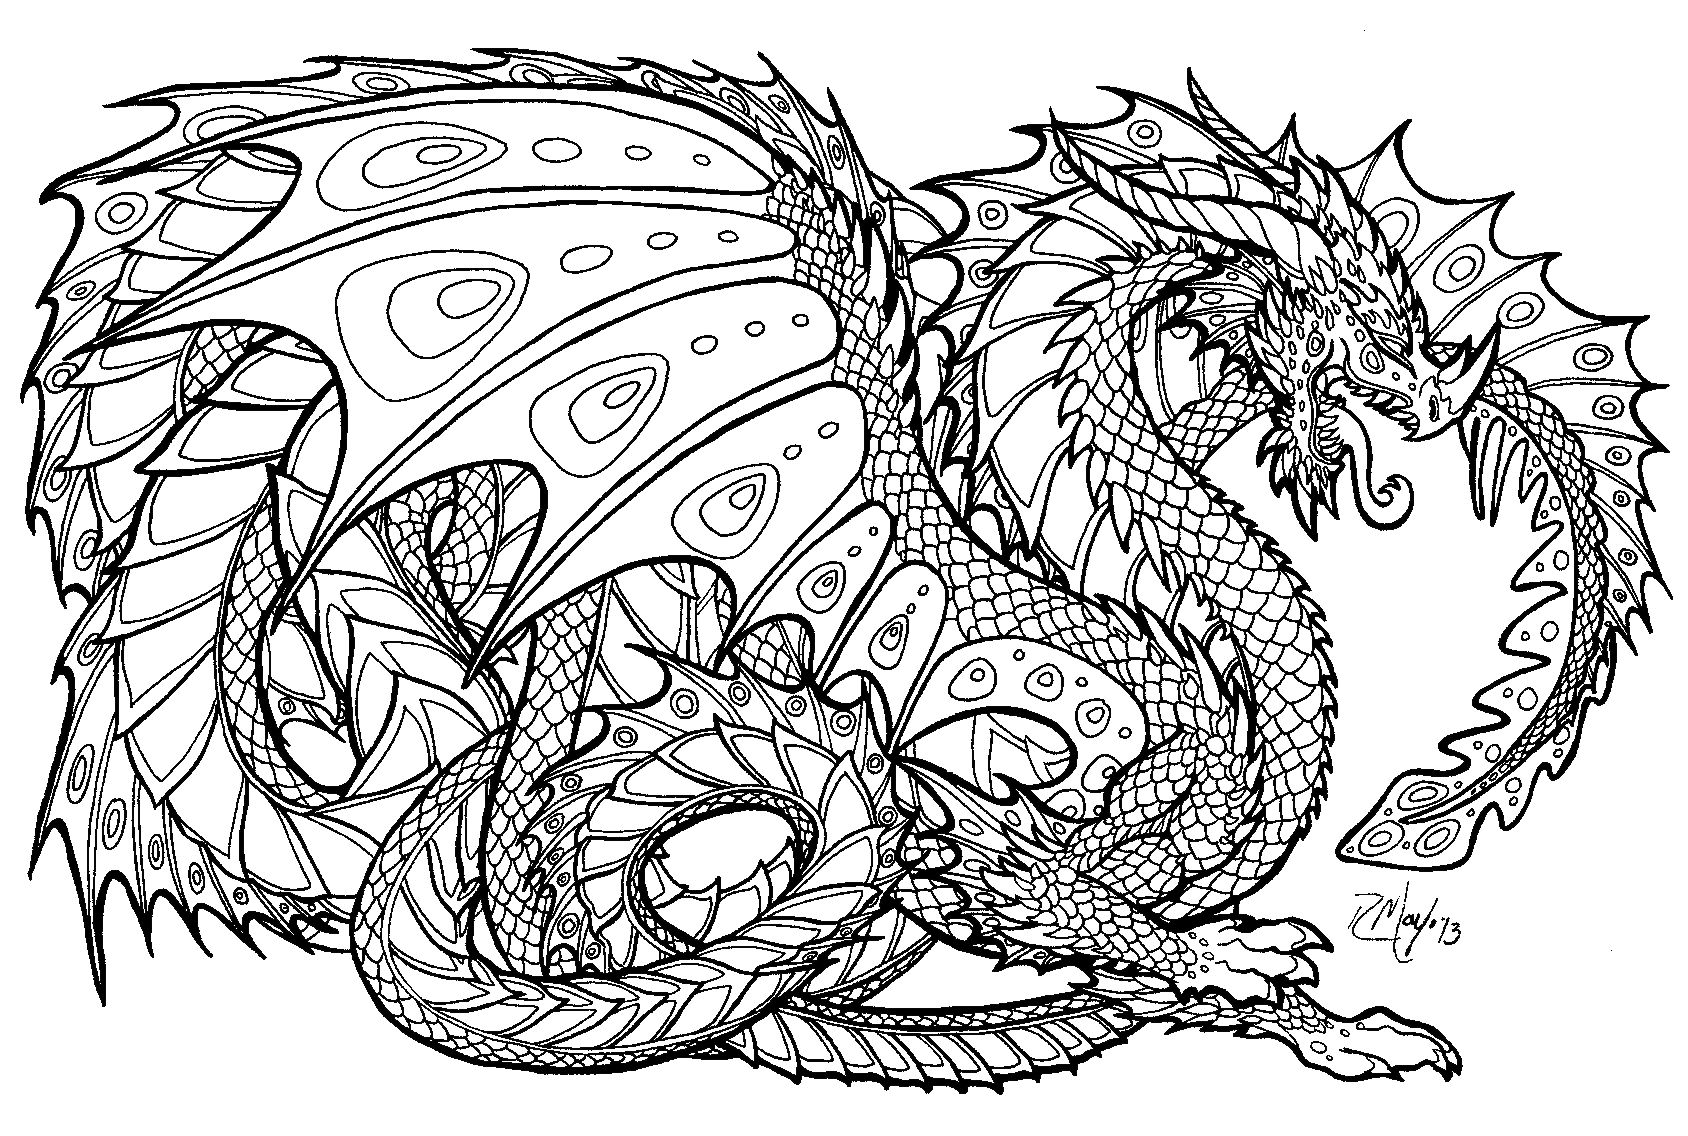 Free Printable Coloring Pages For Adults Advanced Dragons Google Search Detailed Coloring Pages Unicorn Coloring Pages Mandala Coloring Pages